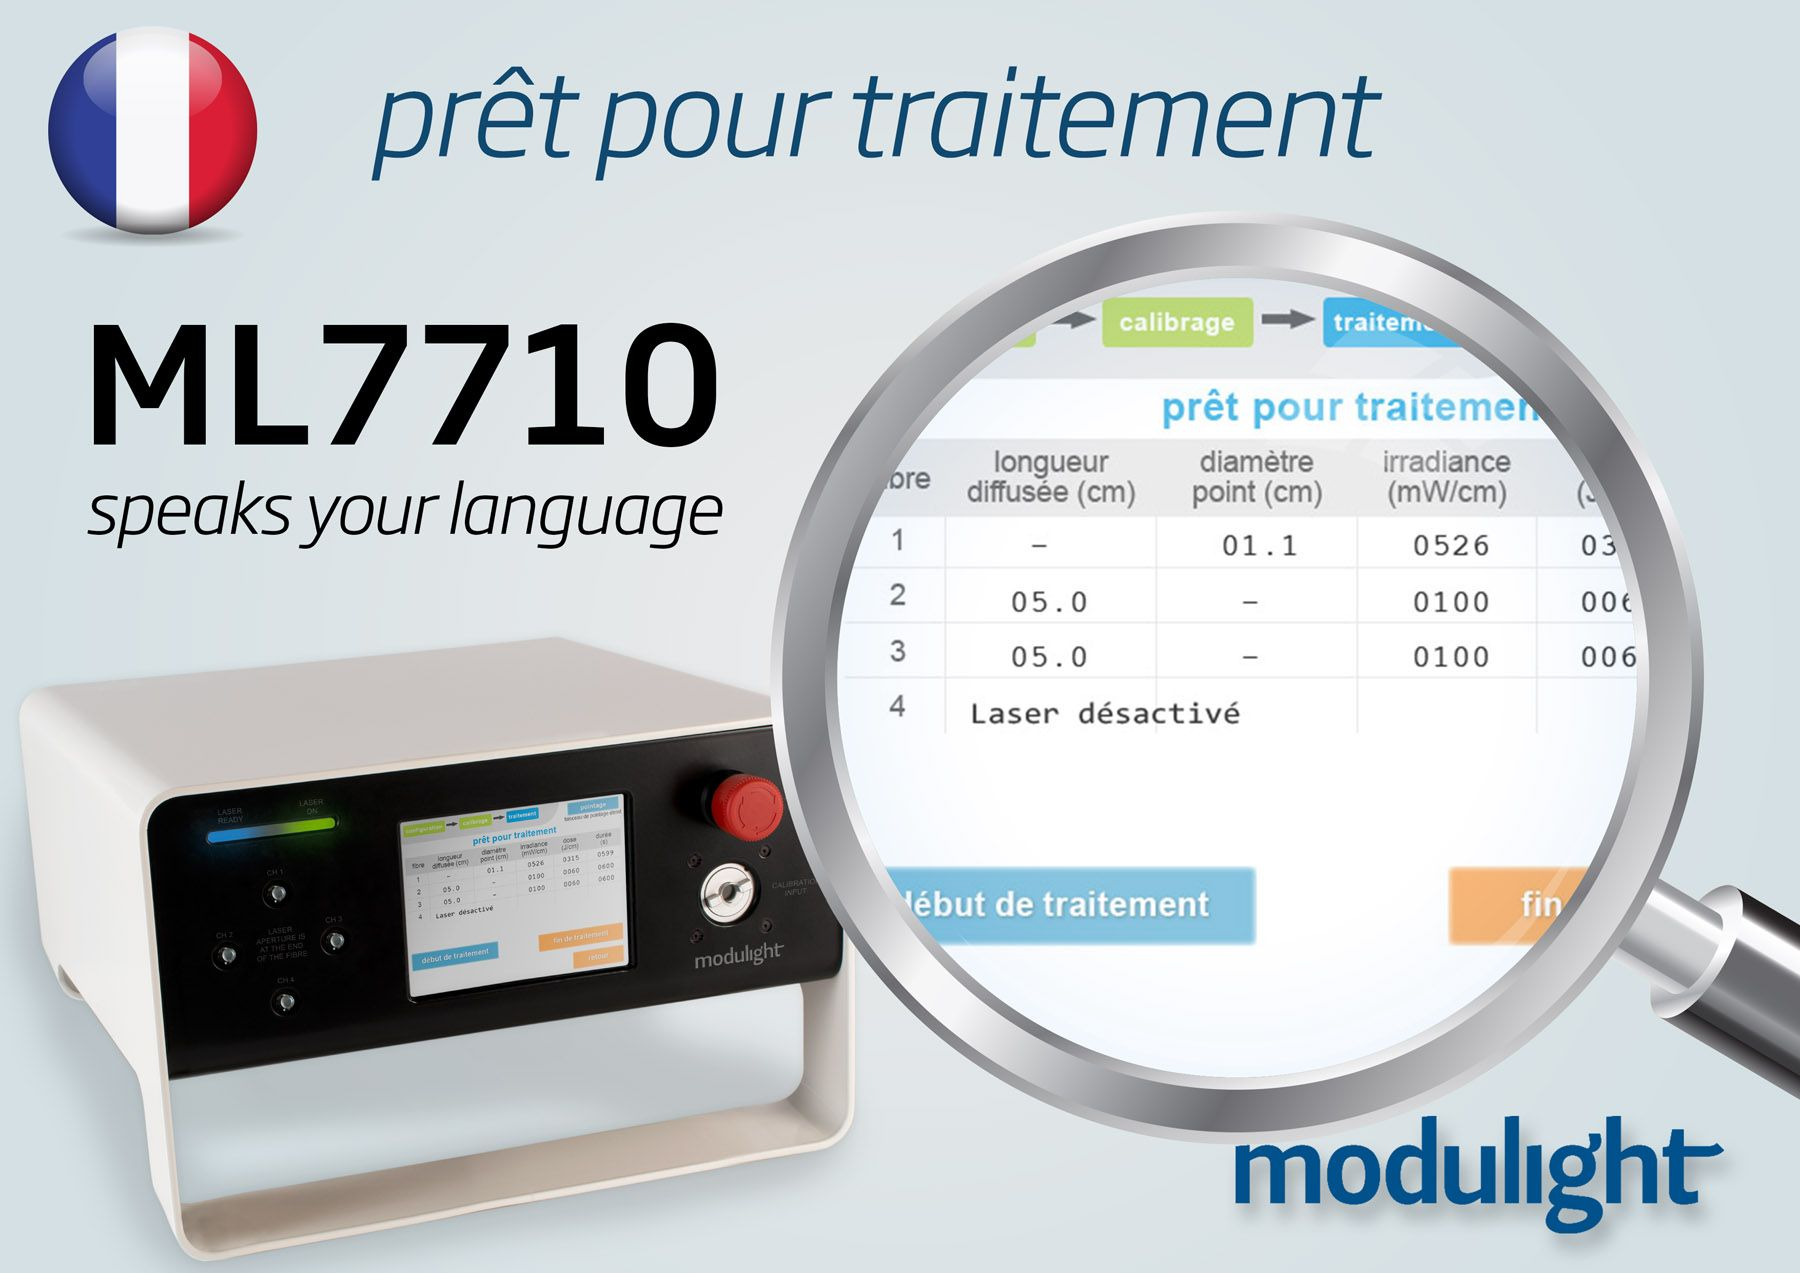 User interface now available in French!